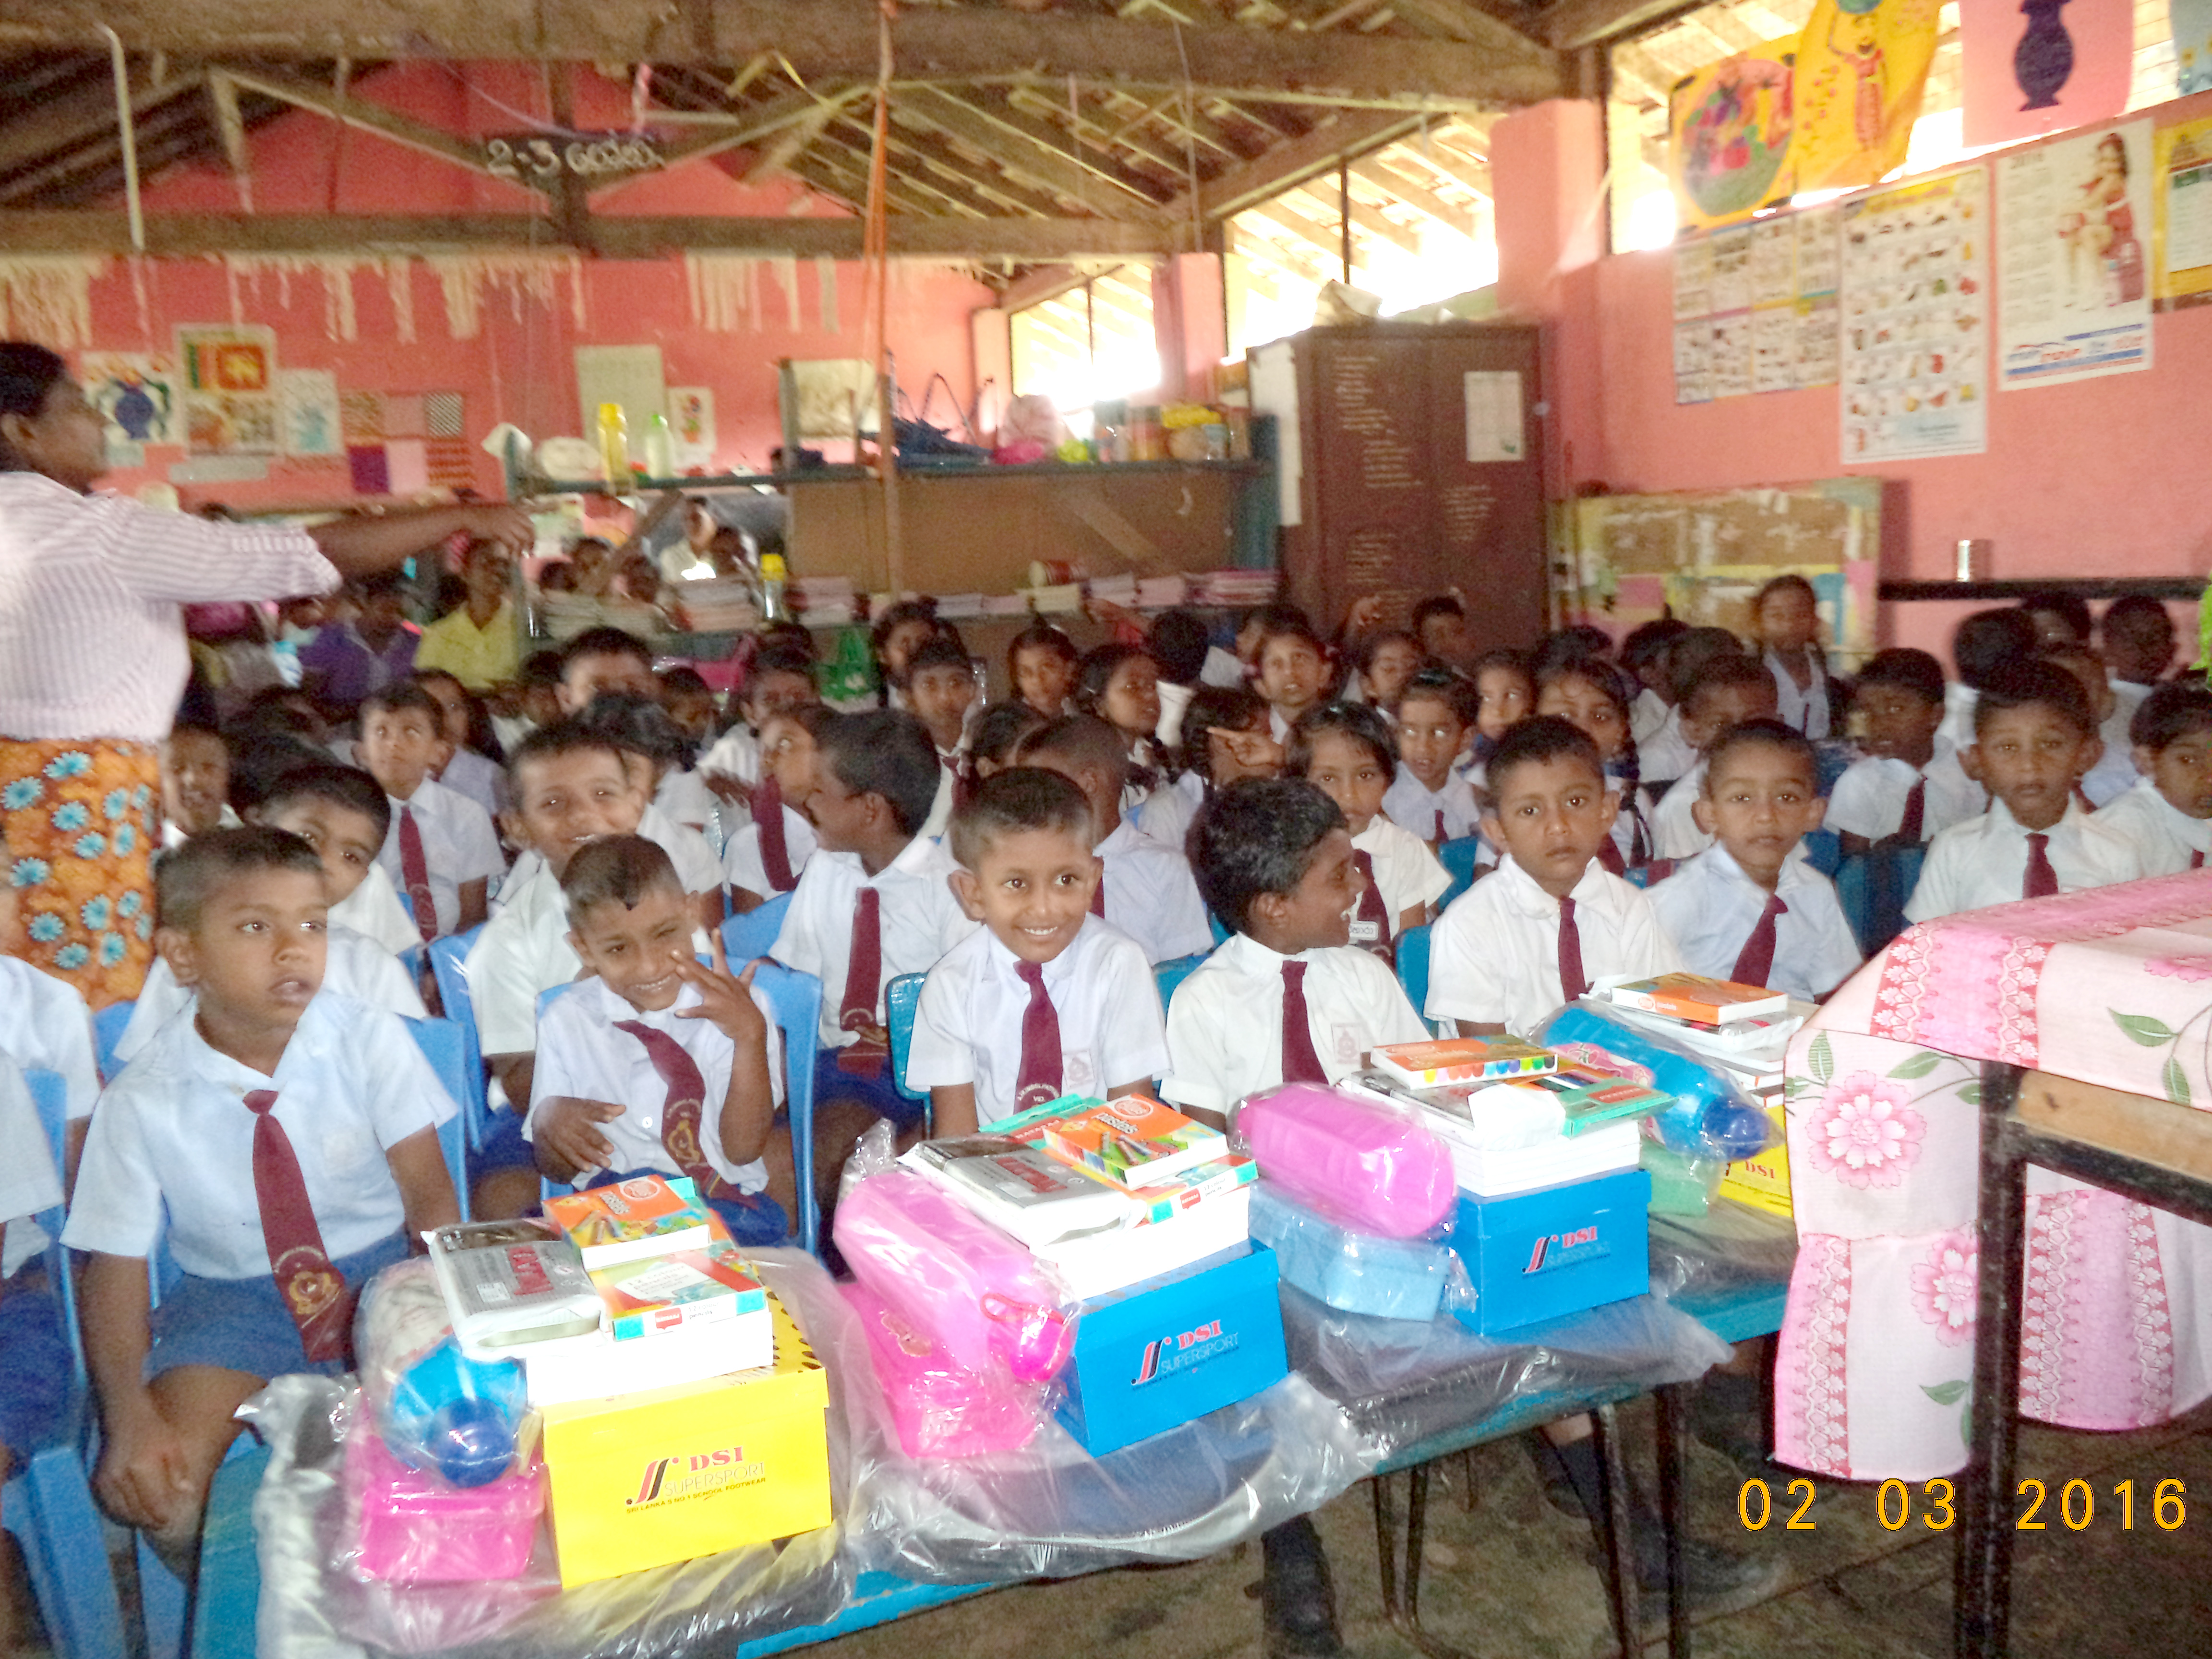 Supporting Schools In Sri Lanka Almayuda House Wiring Occasionally Finances Roof Repair Works Refurbishes Classrooms Renews Electrical